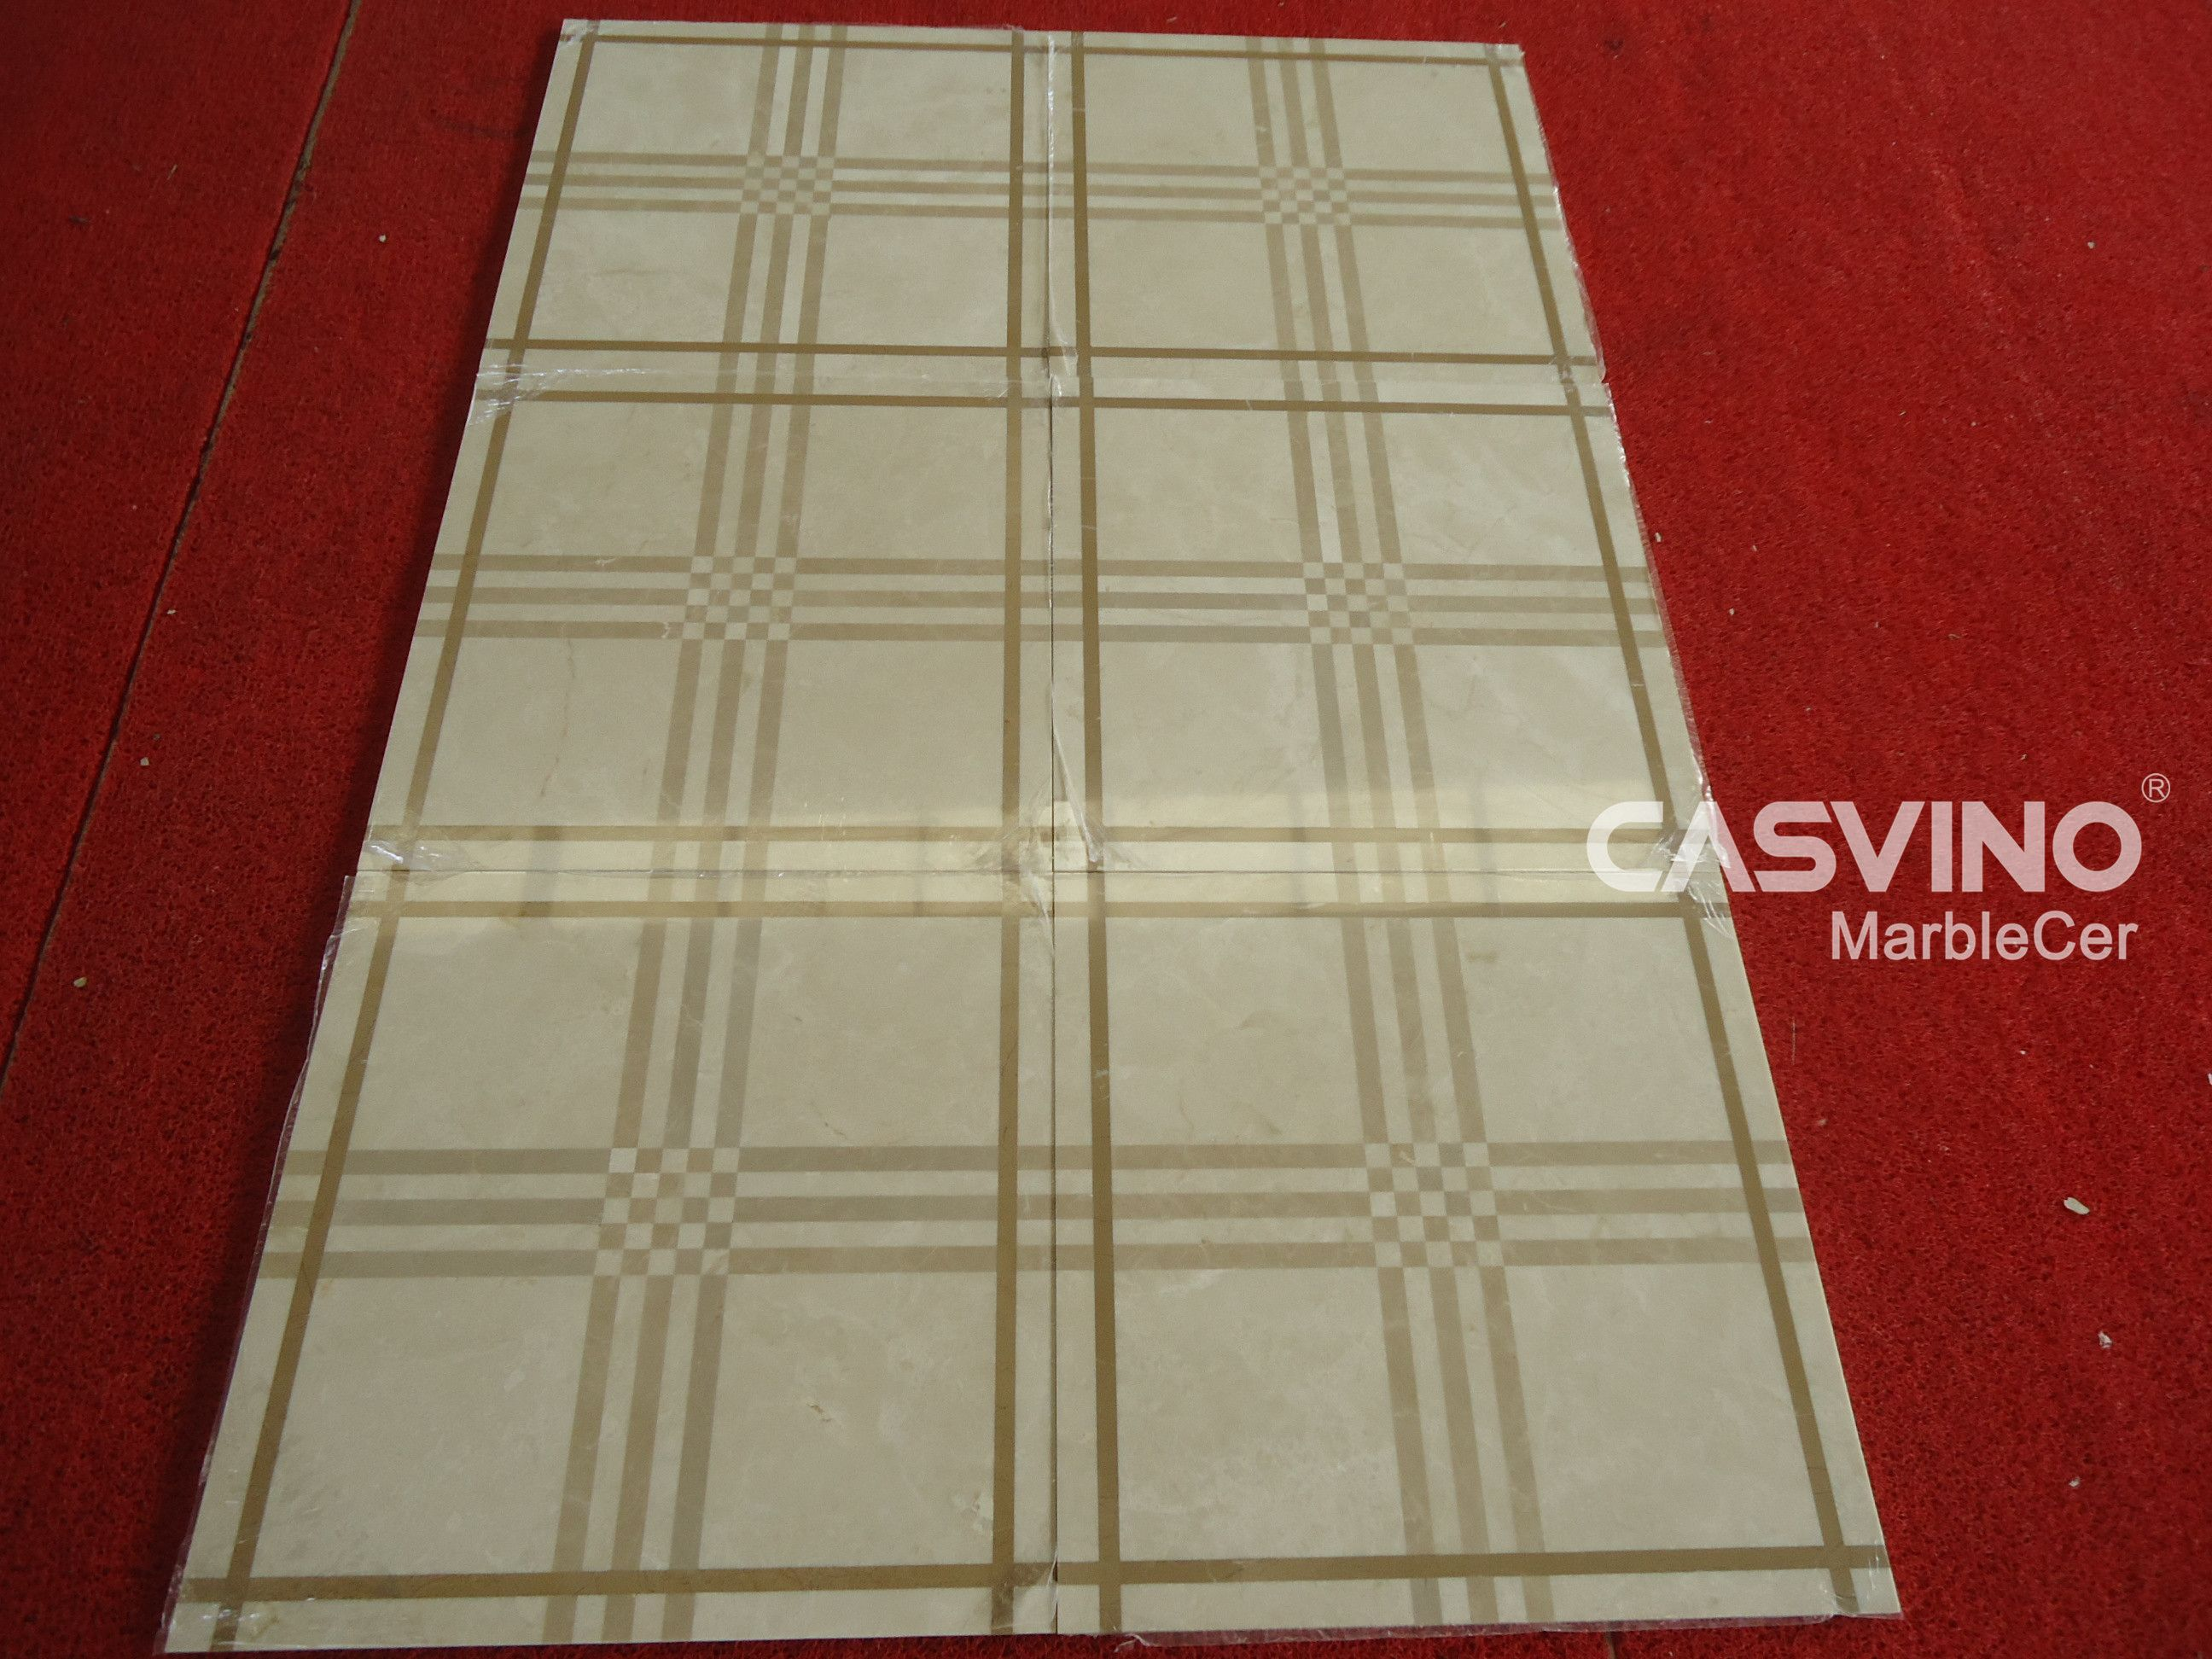 China building materials polished stone floor tile price china building materials polished stone floor tile price dailygadgetfo Choice Image